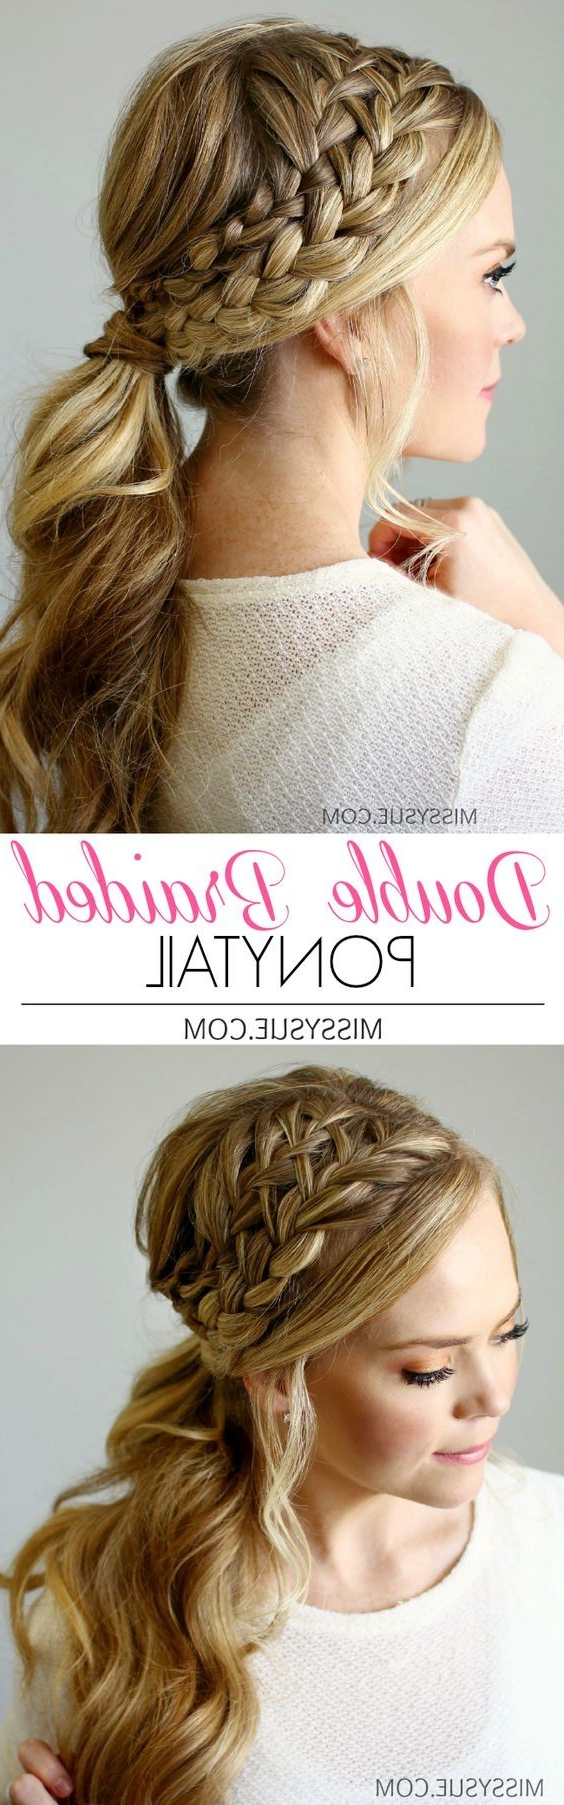 18 Cute Braided Ponytail Styles – Popular Haircuts Intended For 2018 Low Curly Side Ponytail Hairstyles For Prom (View 14 of 20)